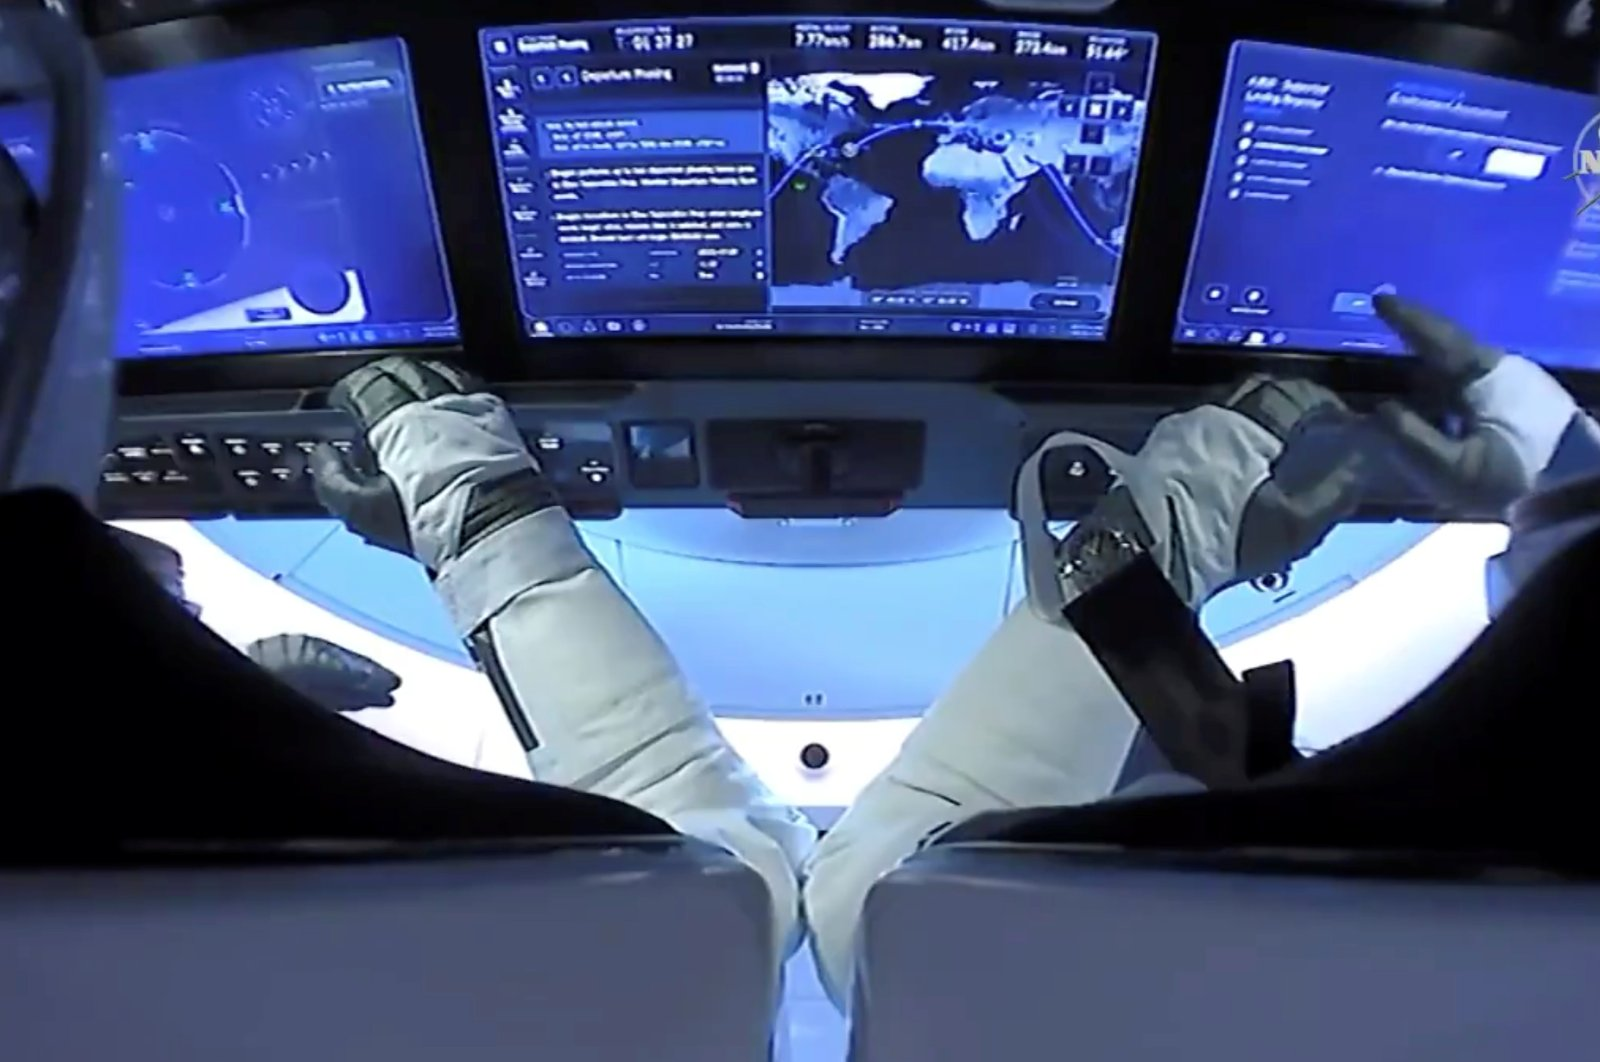 NASA astronauts Robert Behnken and Douglas Hurley are seen aboard SpaceX's Dragon Endeavour spacecraft, Aug. 2, 2020, in this screengrab taken from a video. (NASA handout via Reuters)